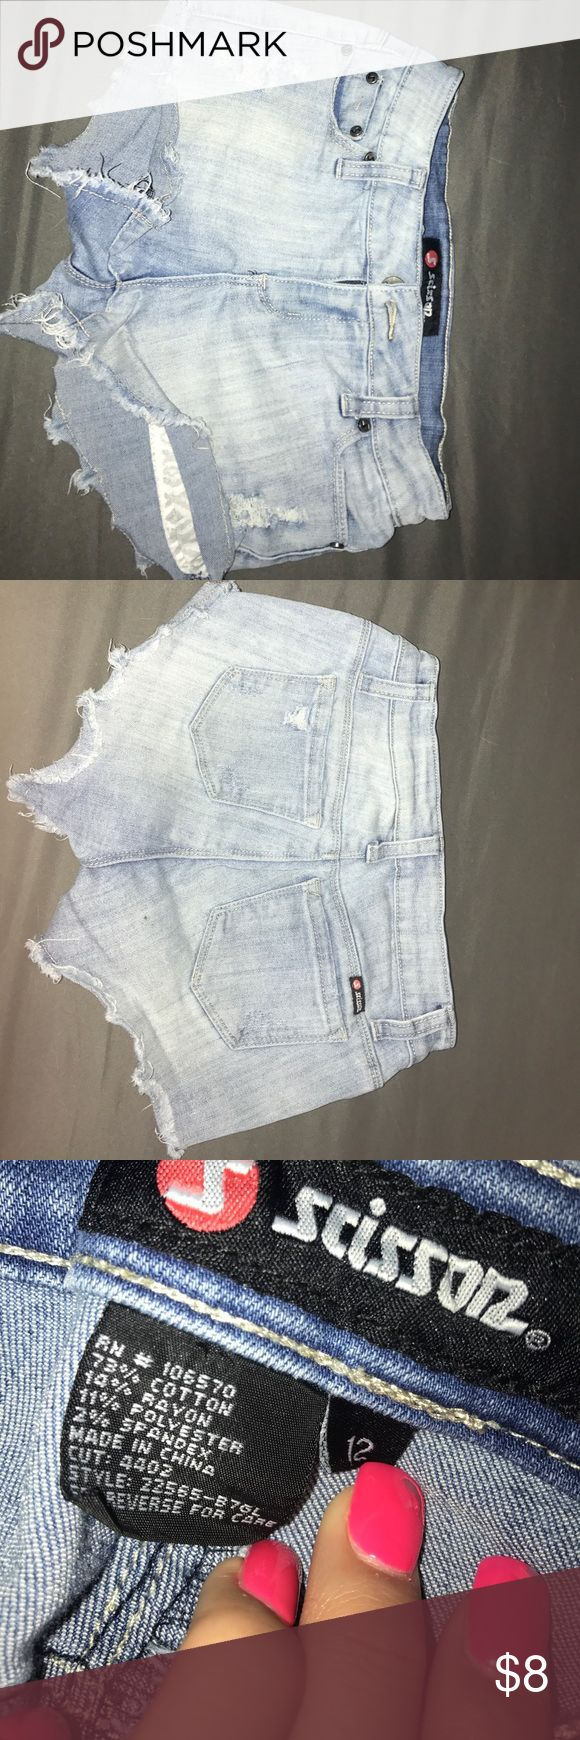 shorts size 12 in girls tillys size 12 jean shorts,good condition,no stains,only worn a few times,size 12 in teen girl sizes Tilly's Shorts Jean Shorts